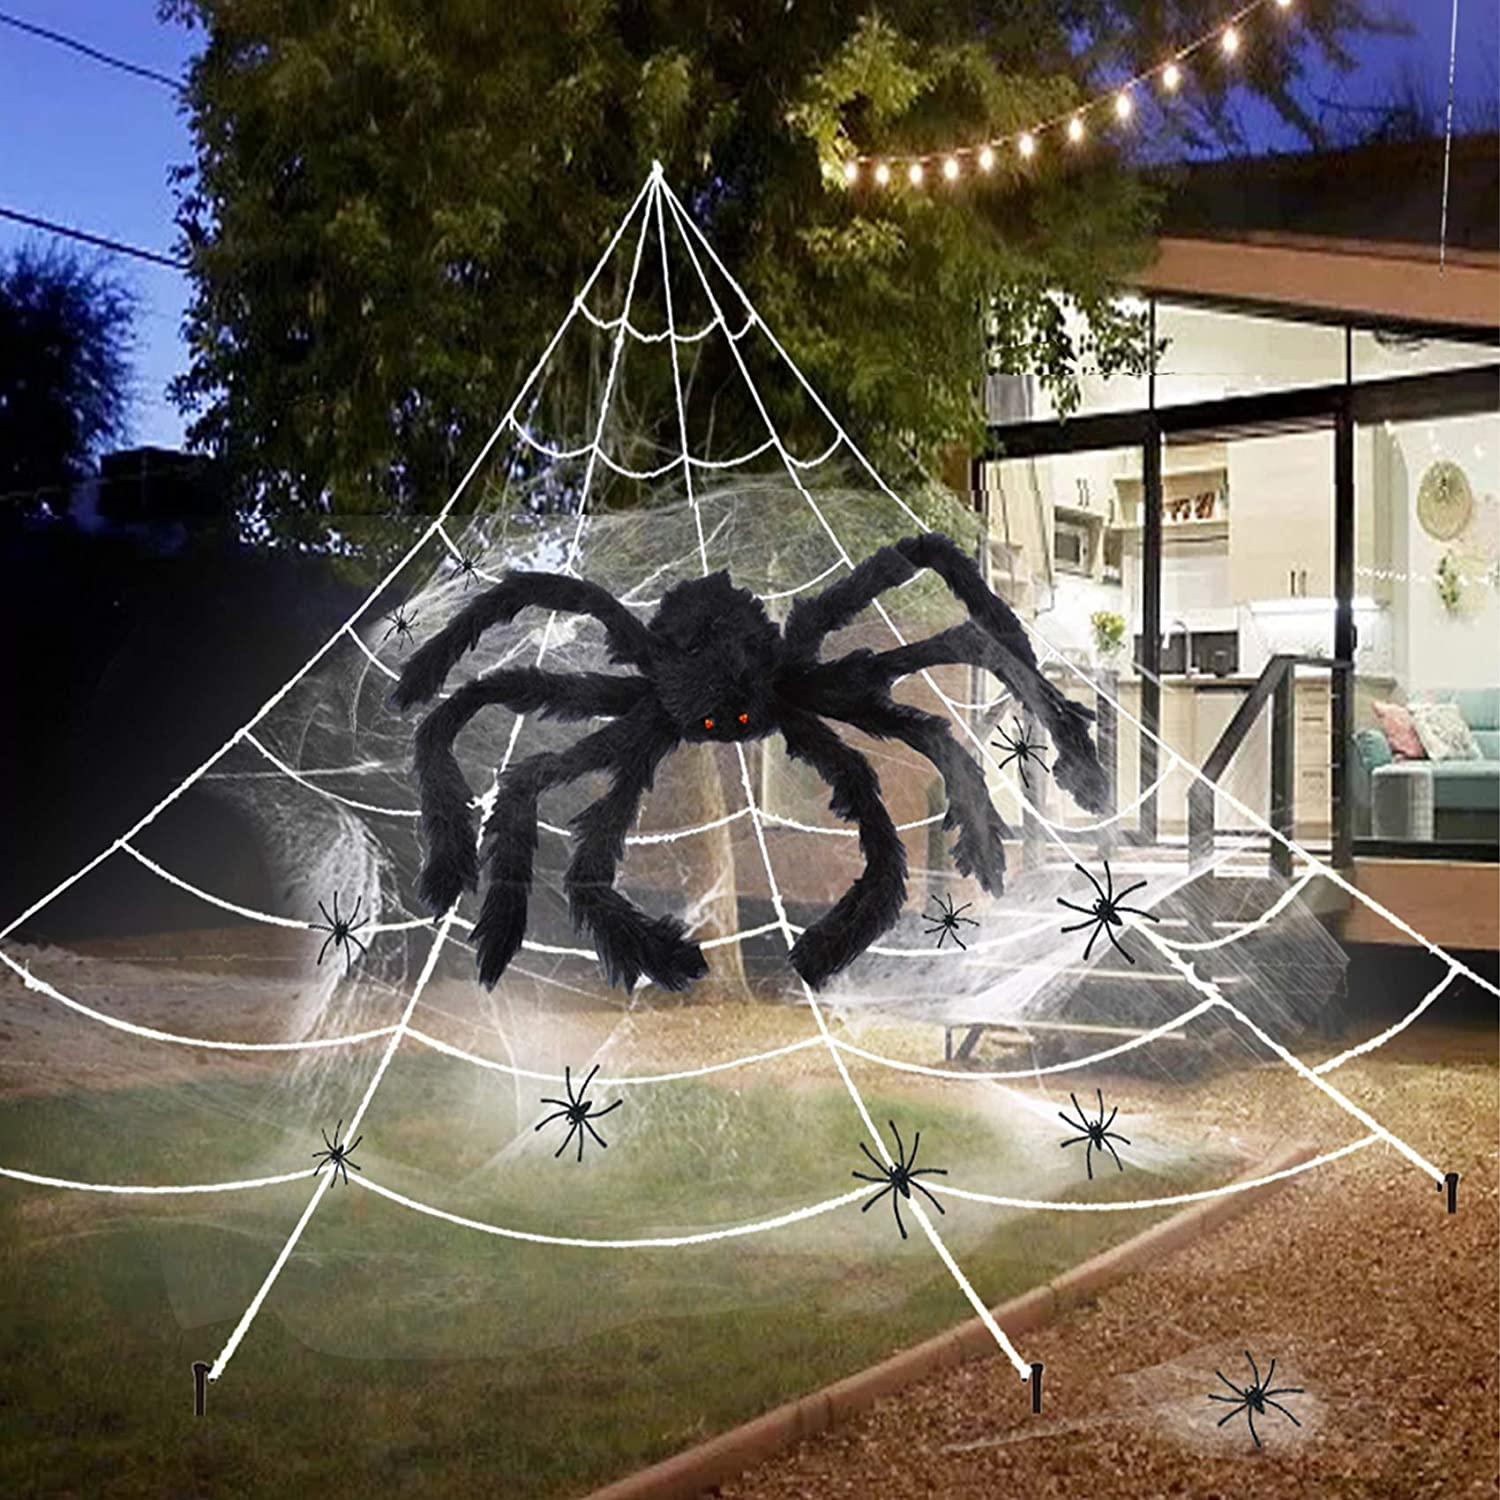 Spider Web Halloween Party Haunted House Spooky Large Webs Diy Scary Decorations